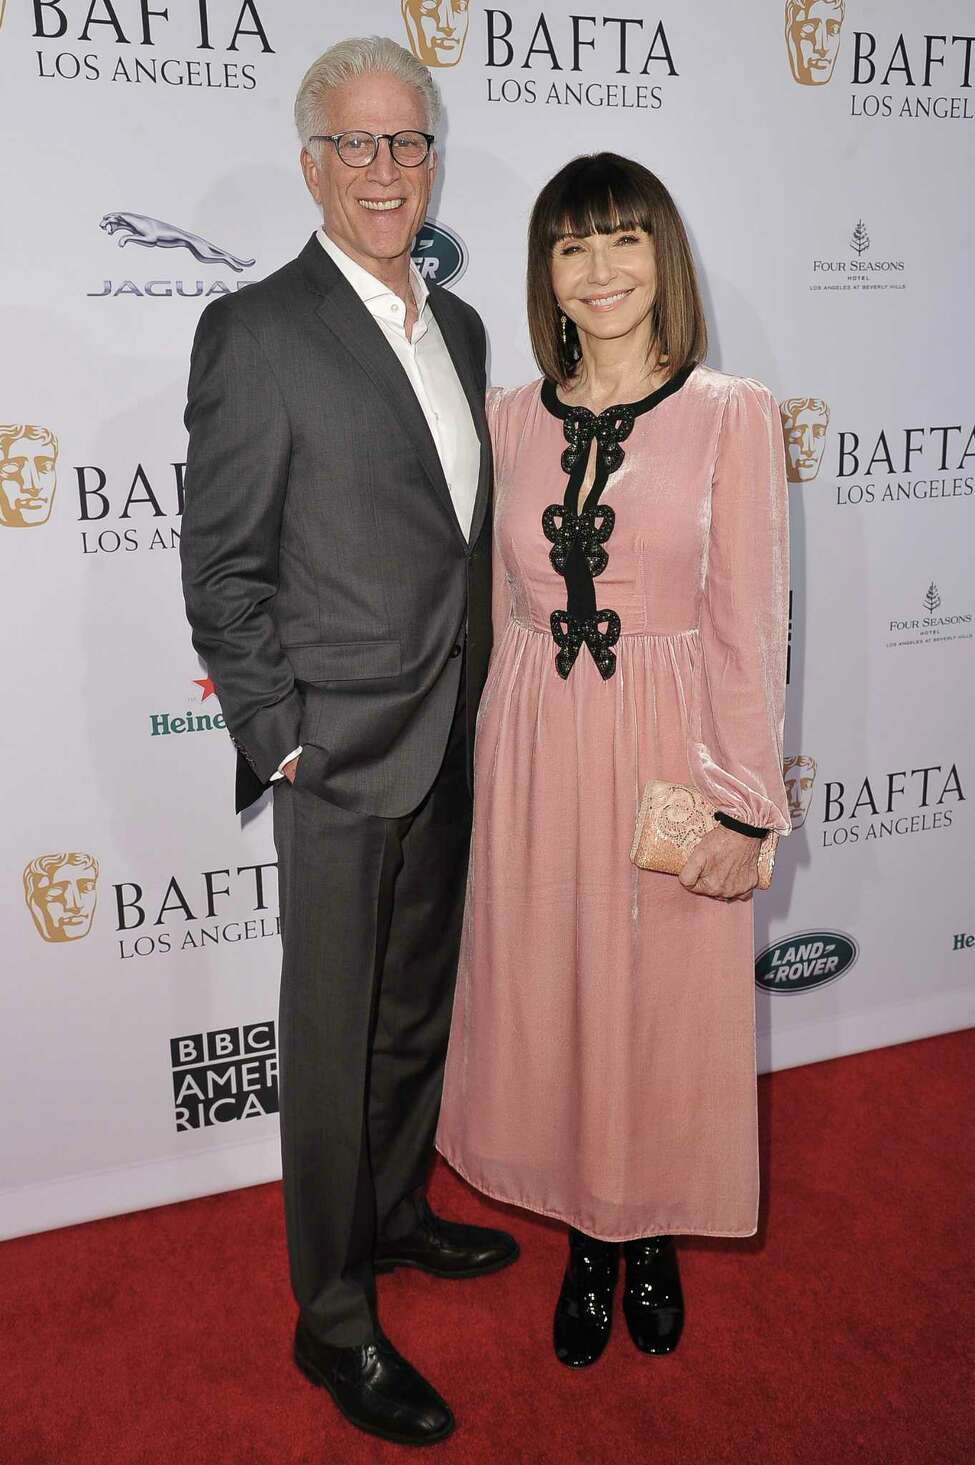 Ted Danson, left, and Mary Steenburgen attend the 2020 BAFTA tea party at the Four Seasons Hotel on Saturday, Jan. 4, 2020, in Los Angeles. (Photo by Richard Shotwell/Invision/AP)